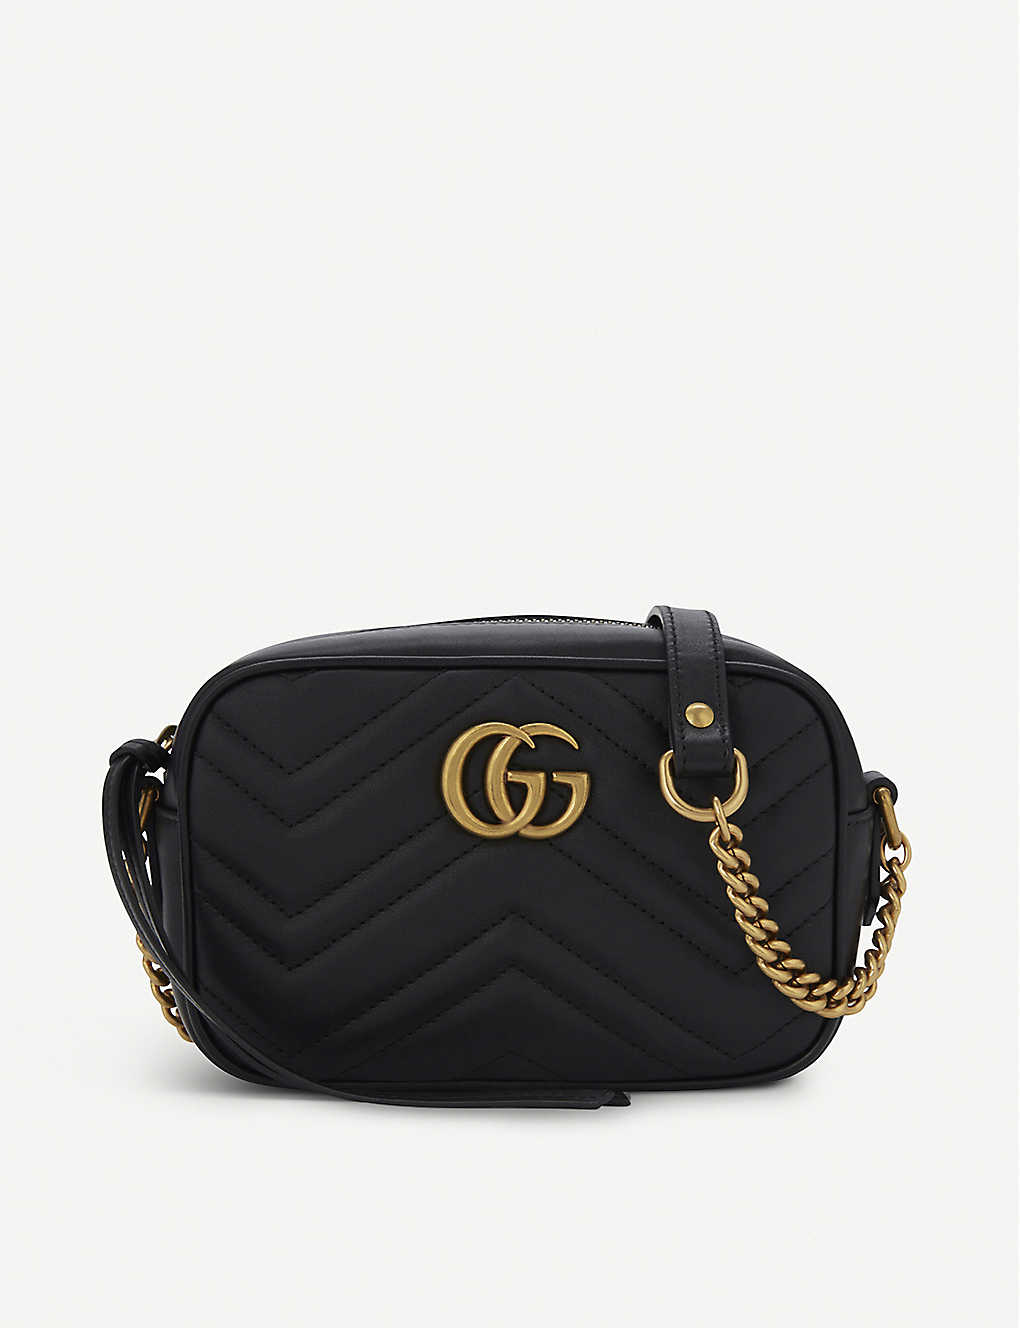 ceb59ec1a670 GUCCI - GG Marmont mini quilted leather cross-body bag | Selfridges.com